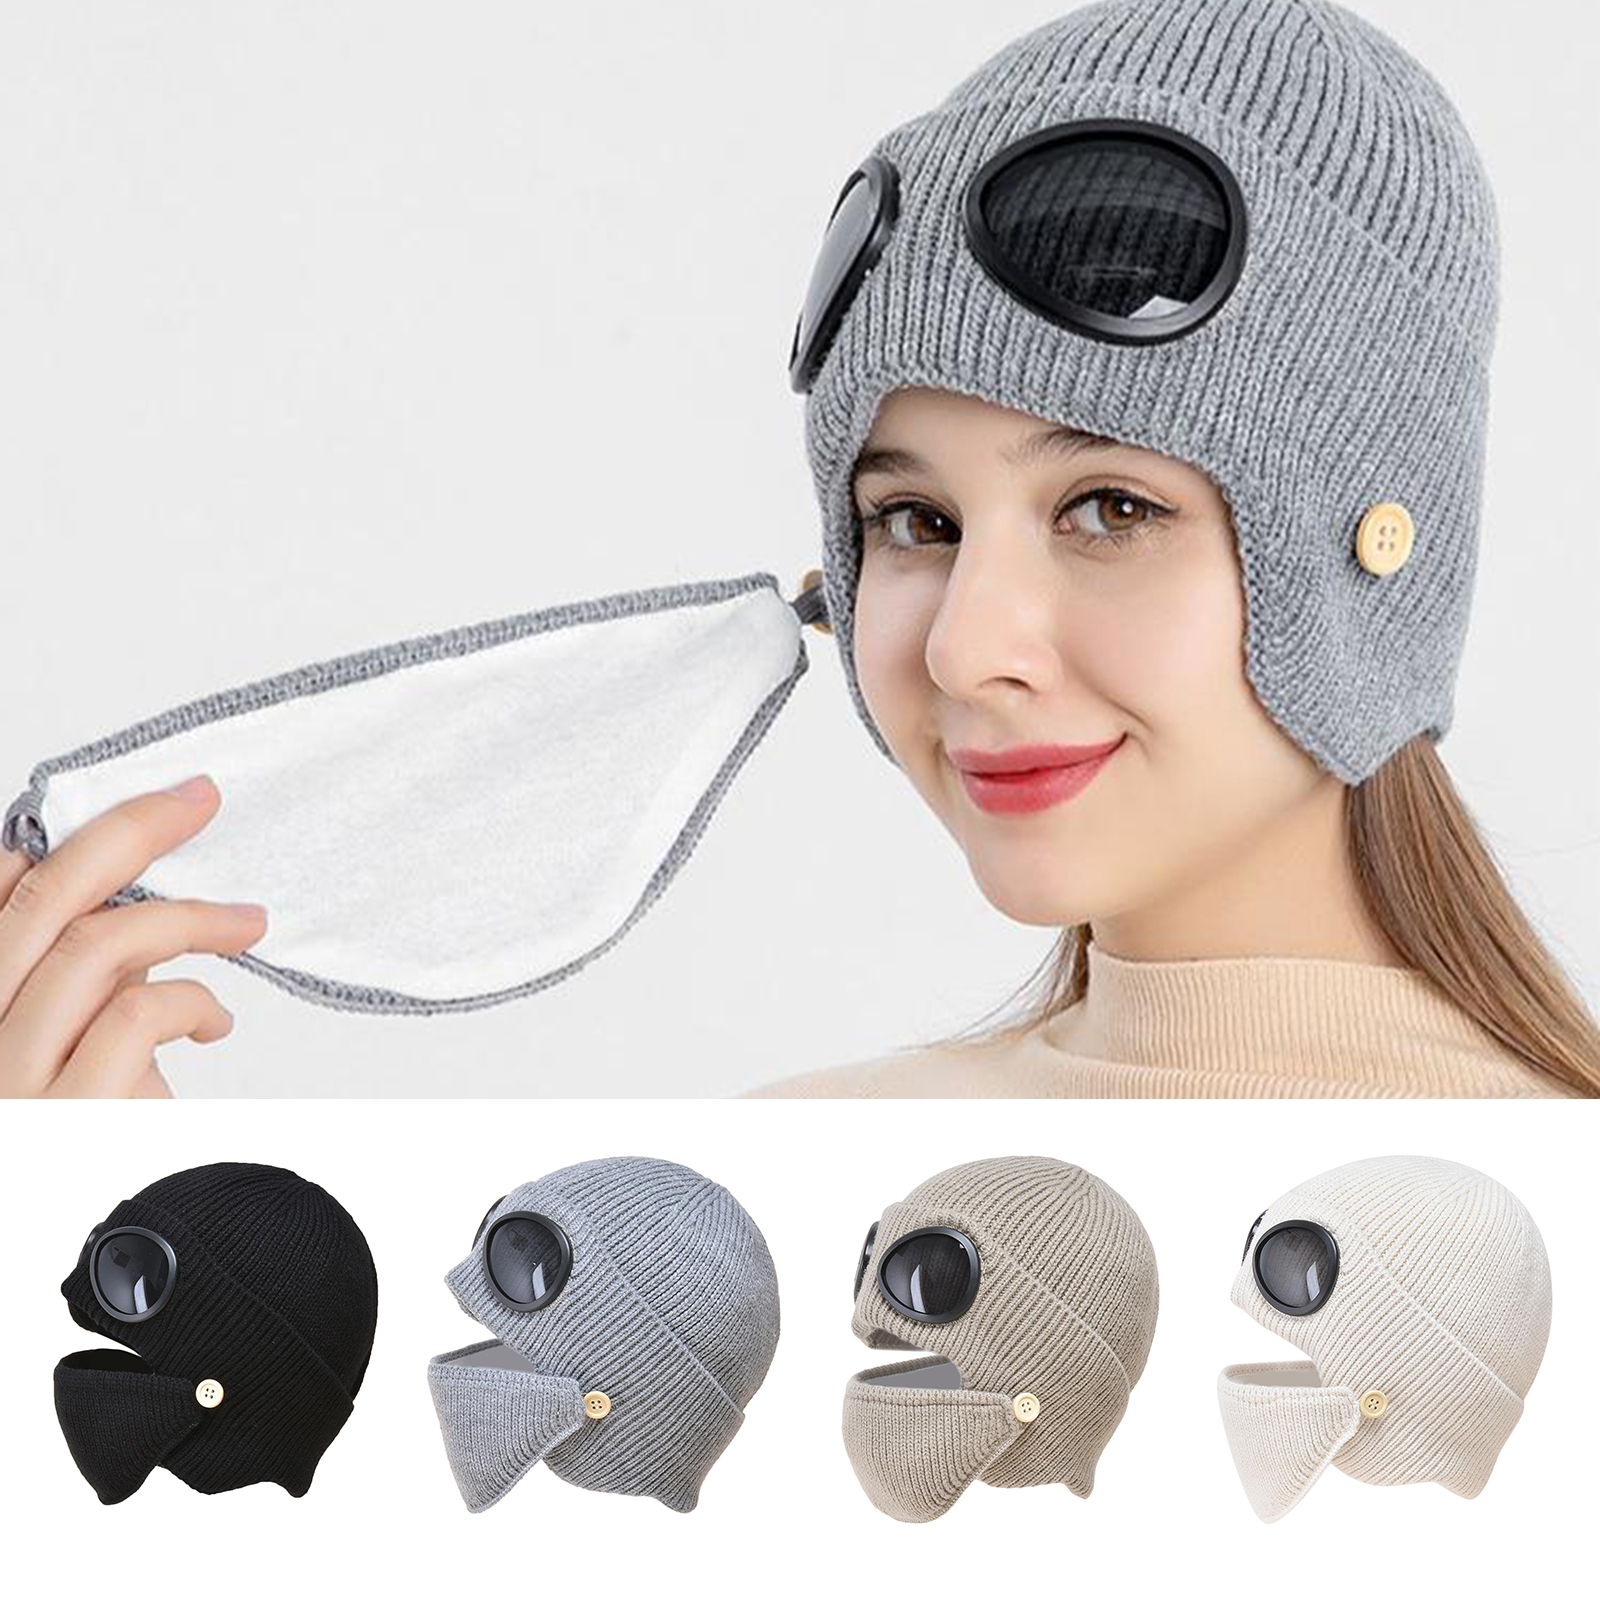 3-in-1 Set Women`s Knitted Hat Caps Ear Warmer Goggles Beanie Winter Hat Skull Beanies Caps for Indoor and Outdoor Sports